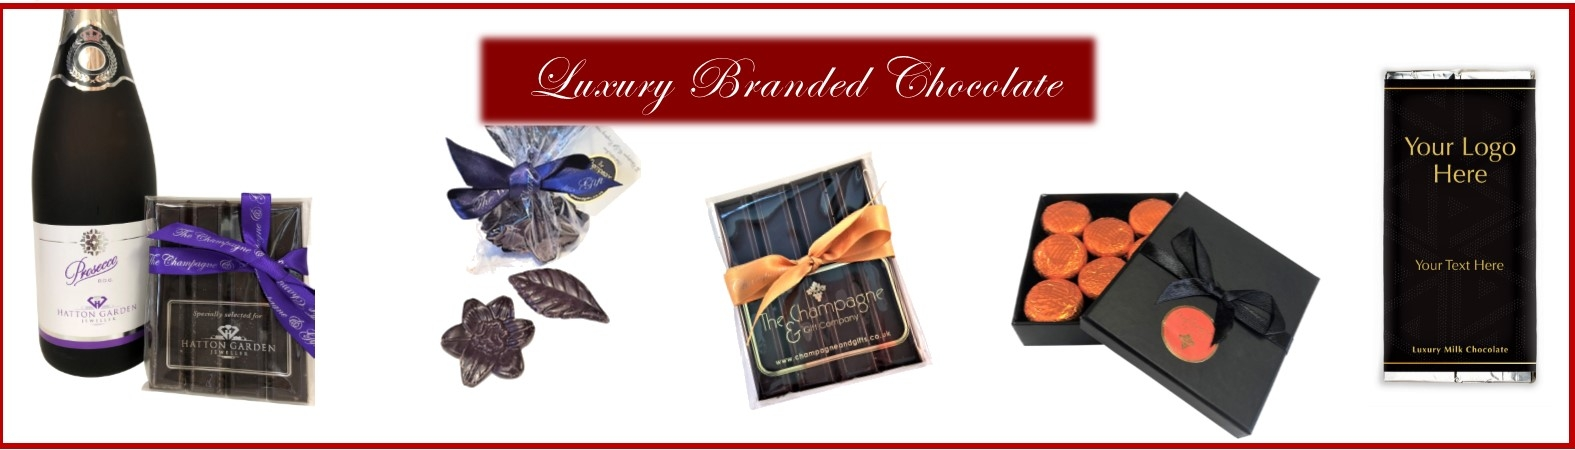 branded-chocolate-gifts-banner